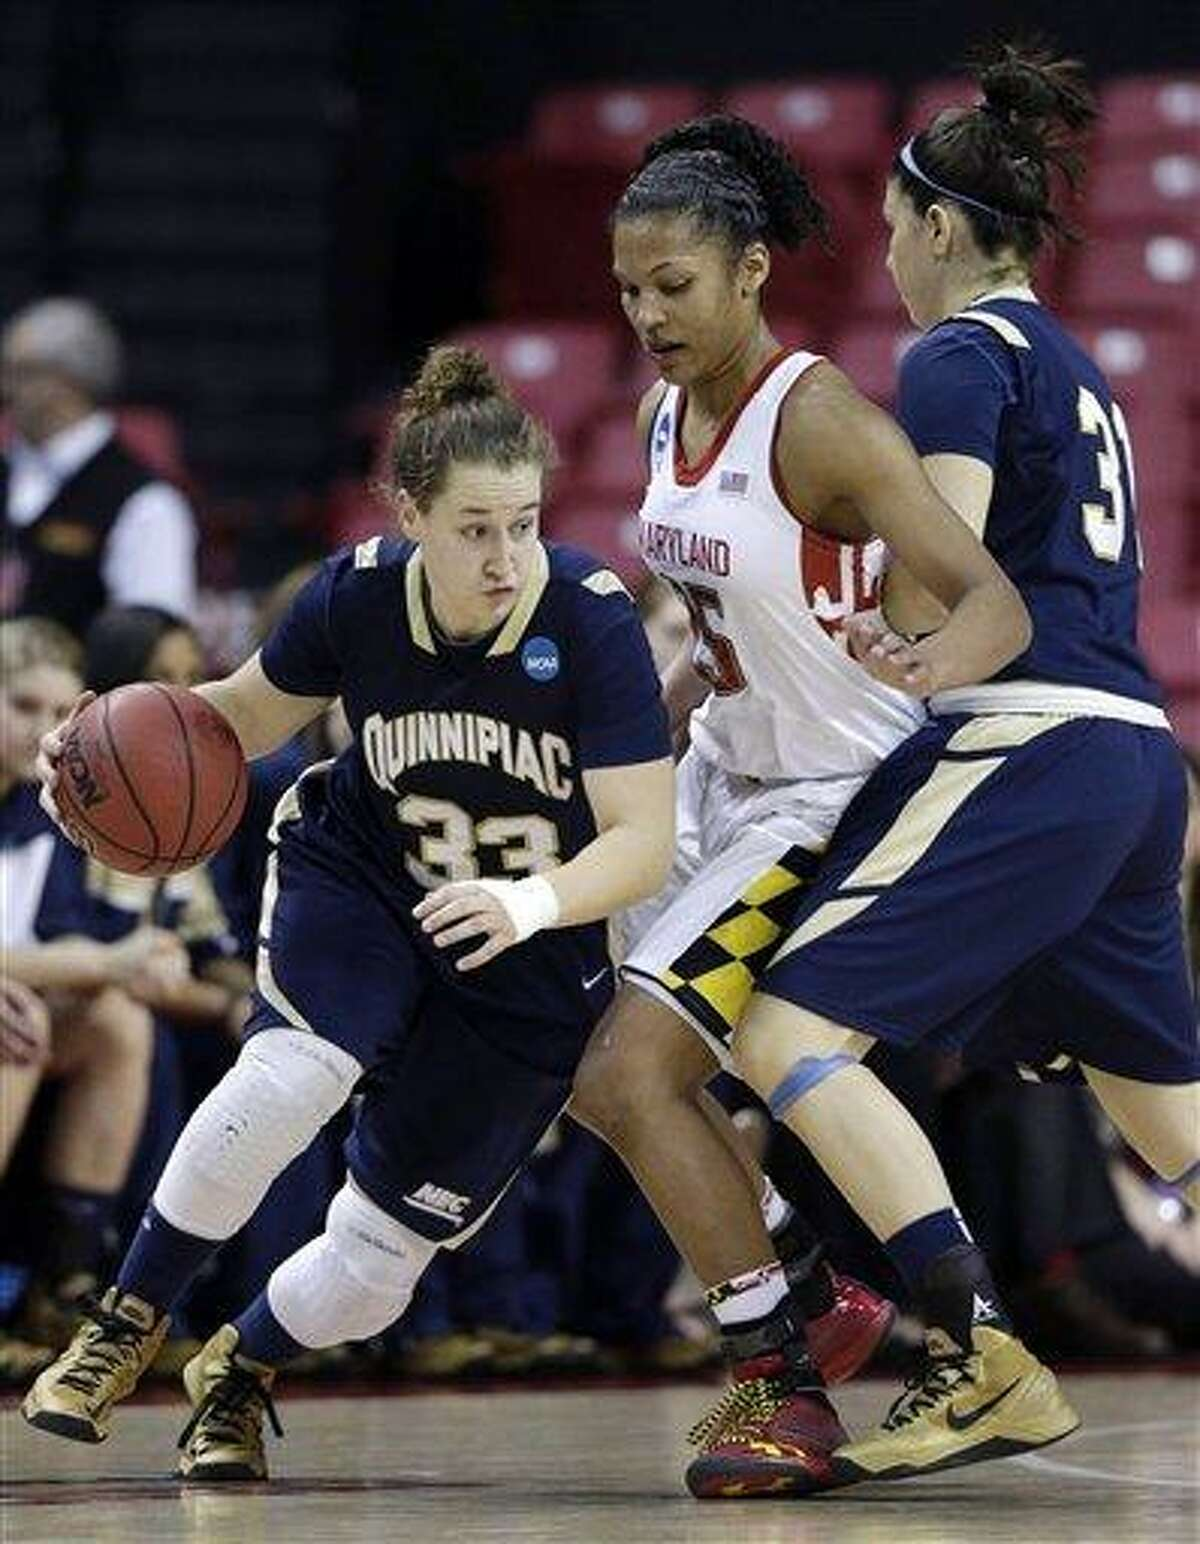 Quinnipiac guard Gillian Abshire, left, drives past Maryland forward Alyssa Thomas as she is screened by Quinnipiac forward Samantha Guastella during the second half of a first-round game in the women's NCAA college basketball tournament in College Park, Md., Saturday, March 23, 2013. (AP Photo/Patrick Semansky)